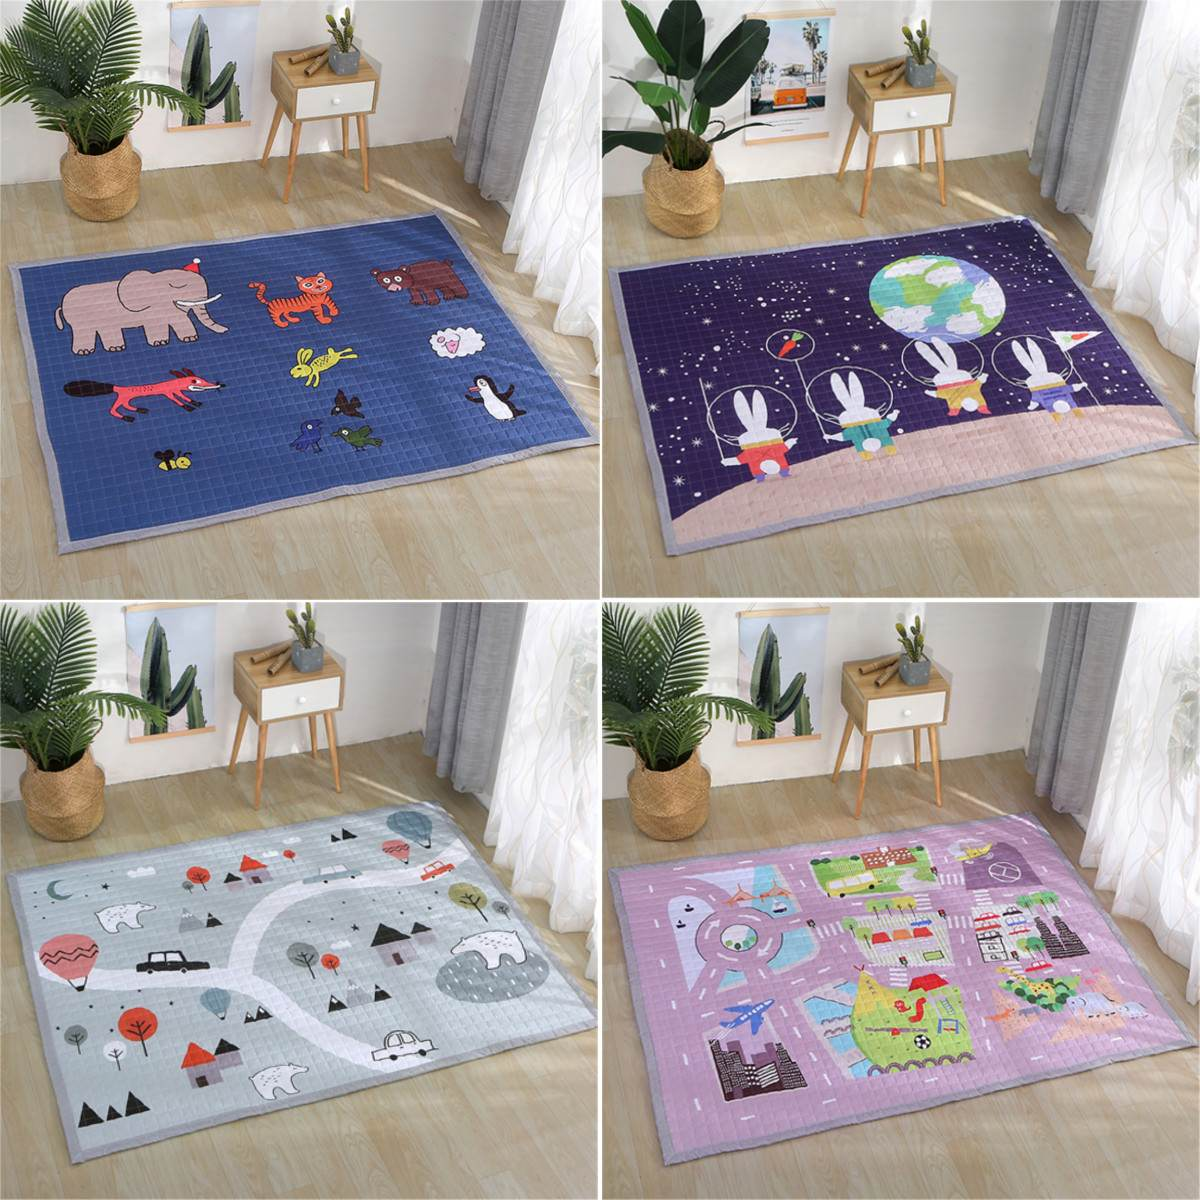 Polyester Baby Kids Game Activity Playmats Crawling Gym Mat Carpet Non-Slip Room Rug Foldable Cartoon Fitness Yoga Mat 195X145cmPolyester Baby Kids Game Activity Playmats Crawling Gym Mat Carpet Non-Slip Room Rug Foldable Cartoon Fitness Yoga Mat 195X145cm